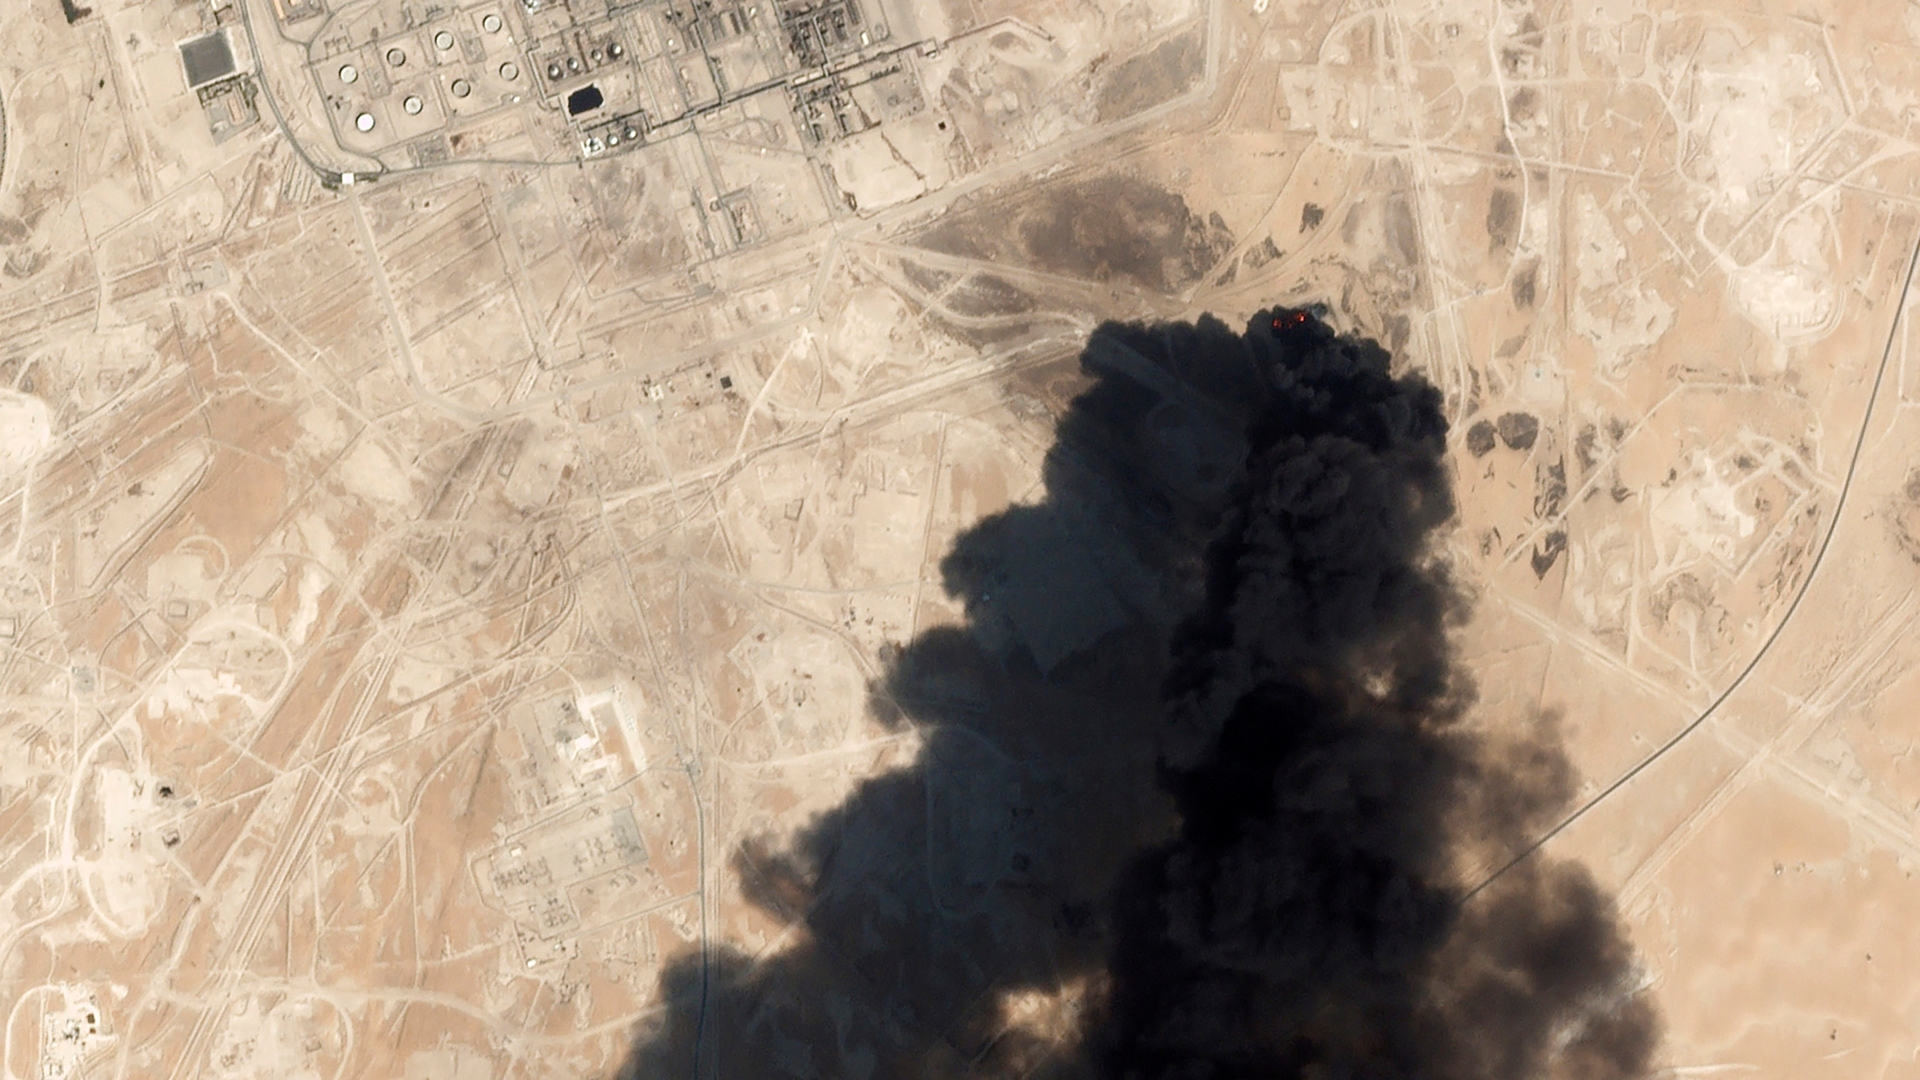 'They would be toast': Reason Saudis haven't hit back over oil attack